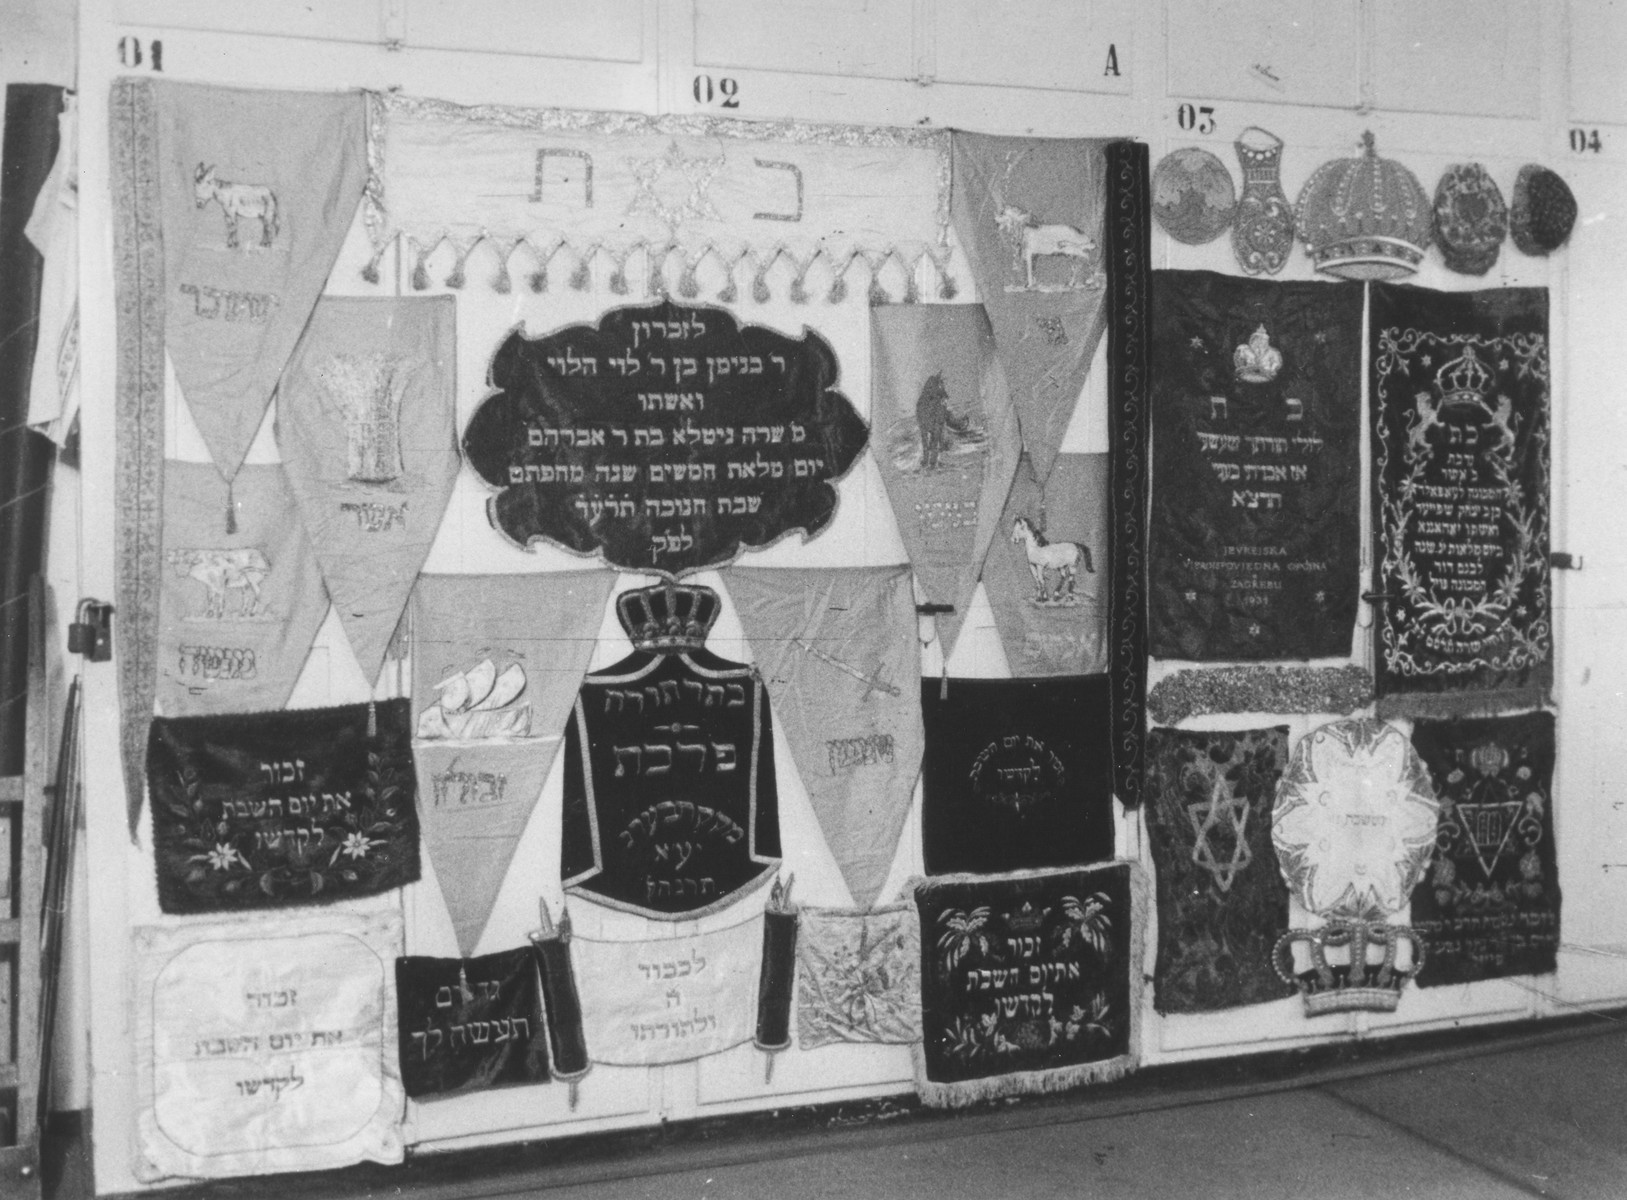 Display of ritual synagogue textiles confiscated by the Nazis.